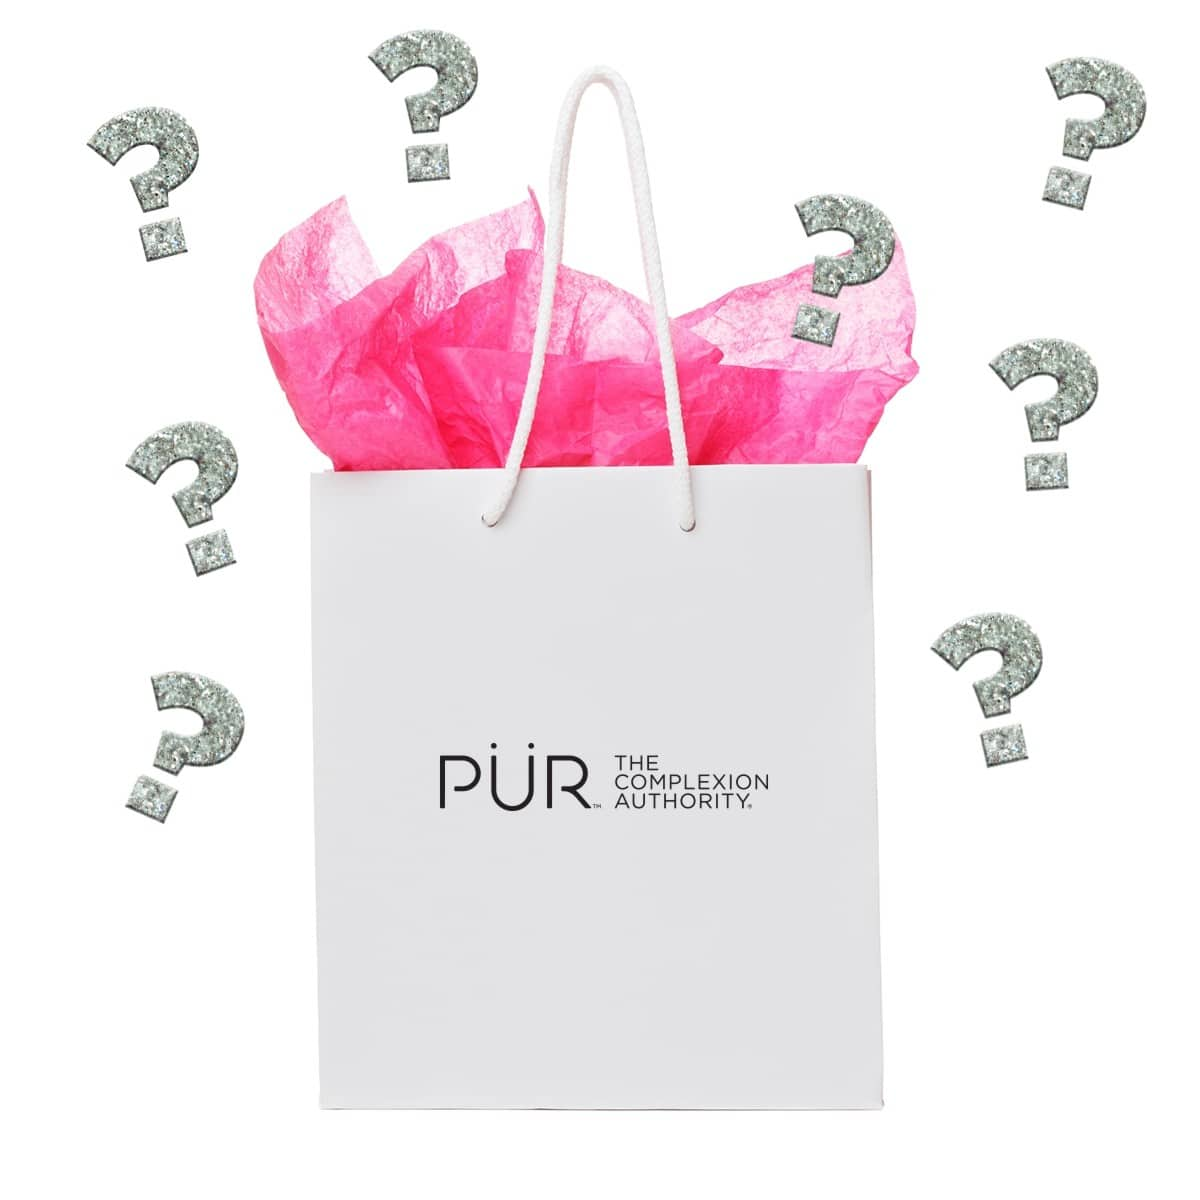 PUR Cosmetics Mystery Bag - 5 Full Size Items & Make Up Bag $19.25 Shipped